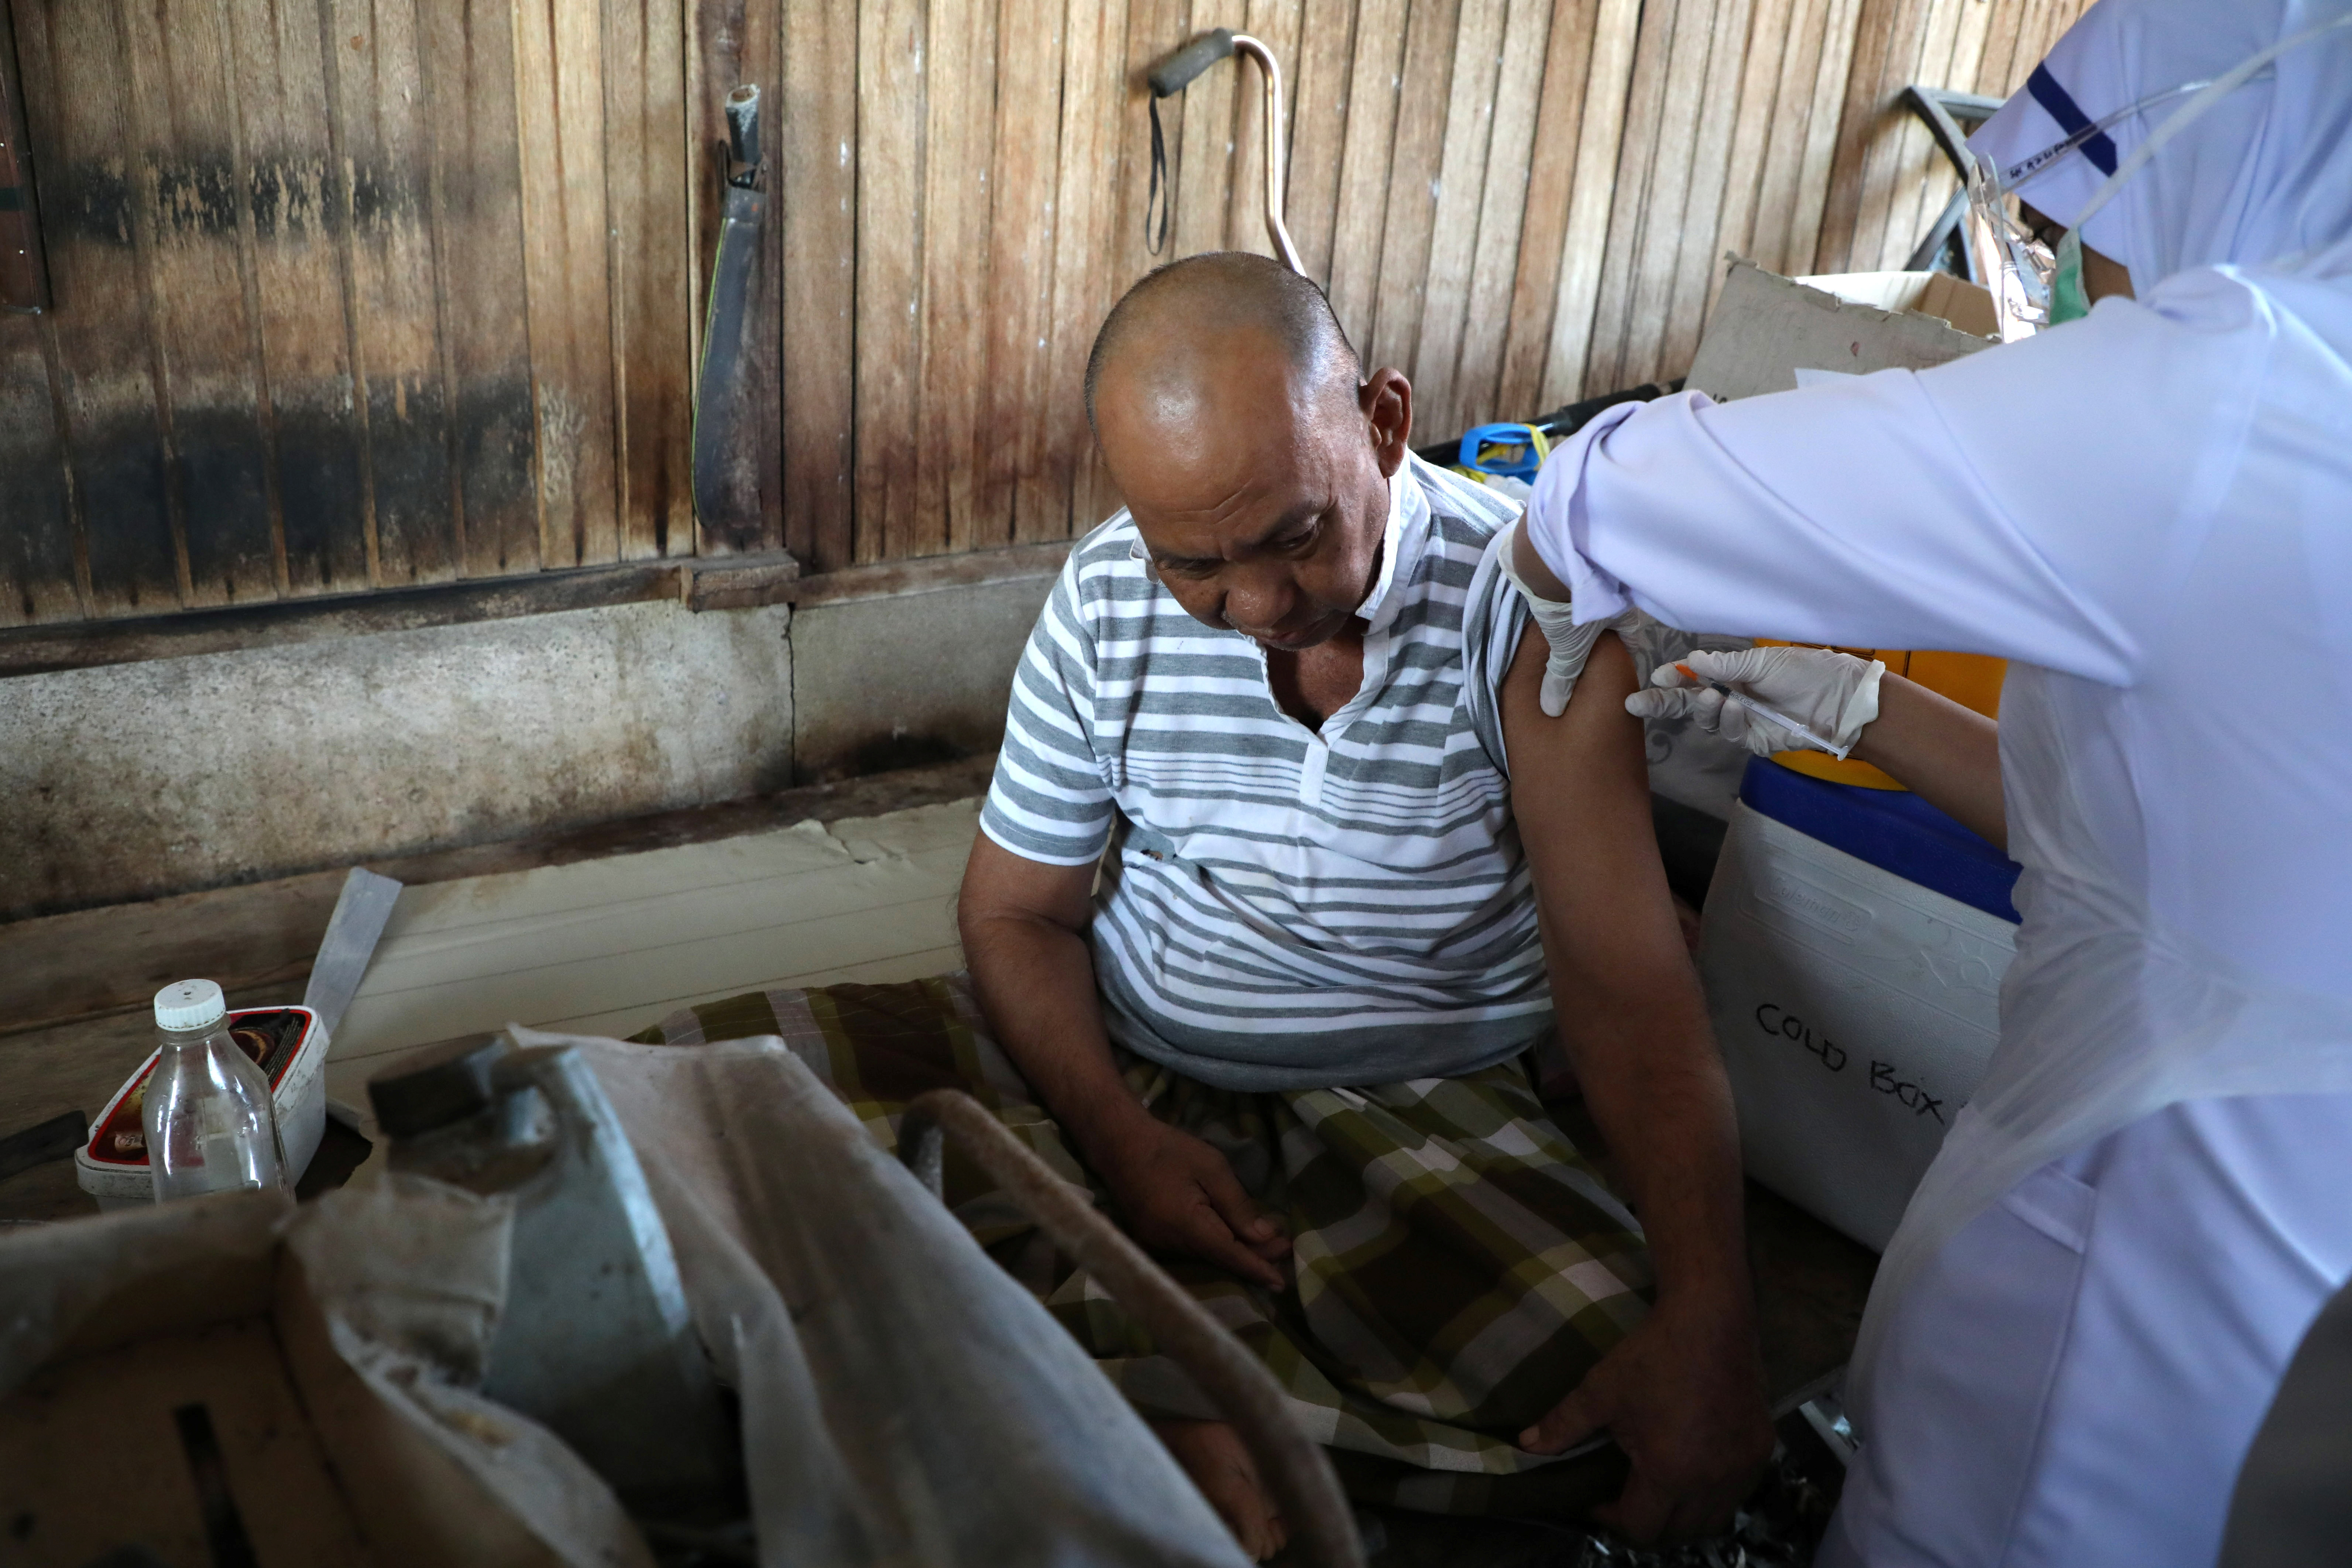 A healthcare worker administers the Pfizer coronavirus disease (COVID-19) vaccine to an elderly man at his home, in Kuala Langat, Malaysia July 17, 2021. REUTERS/Lim Huey Teng